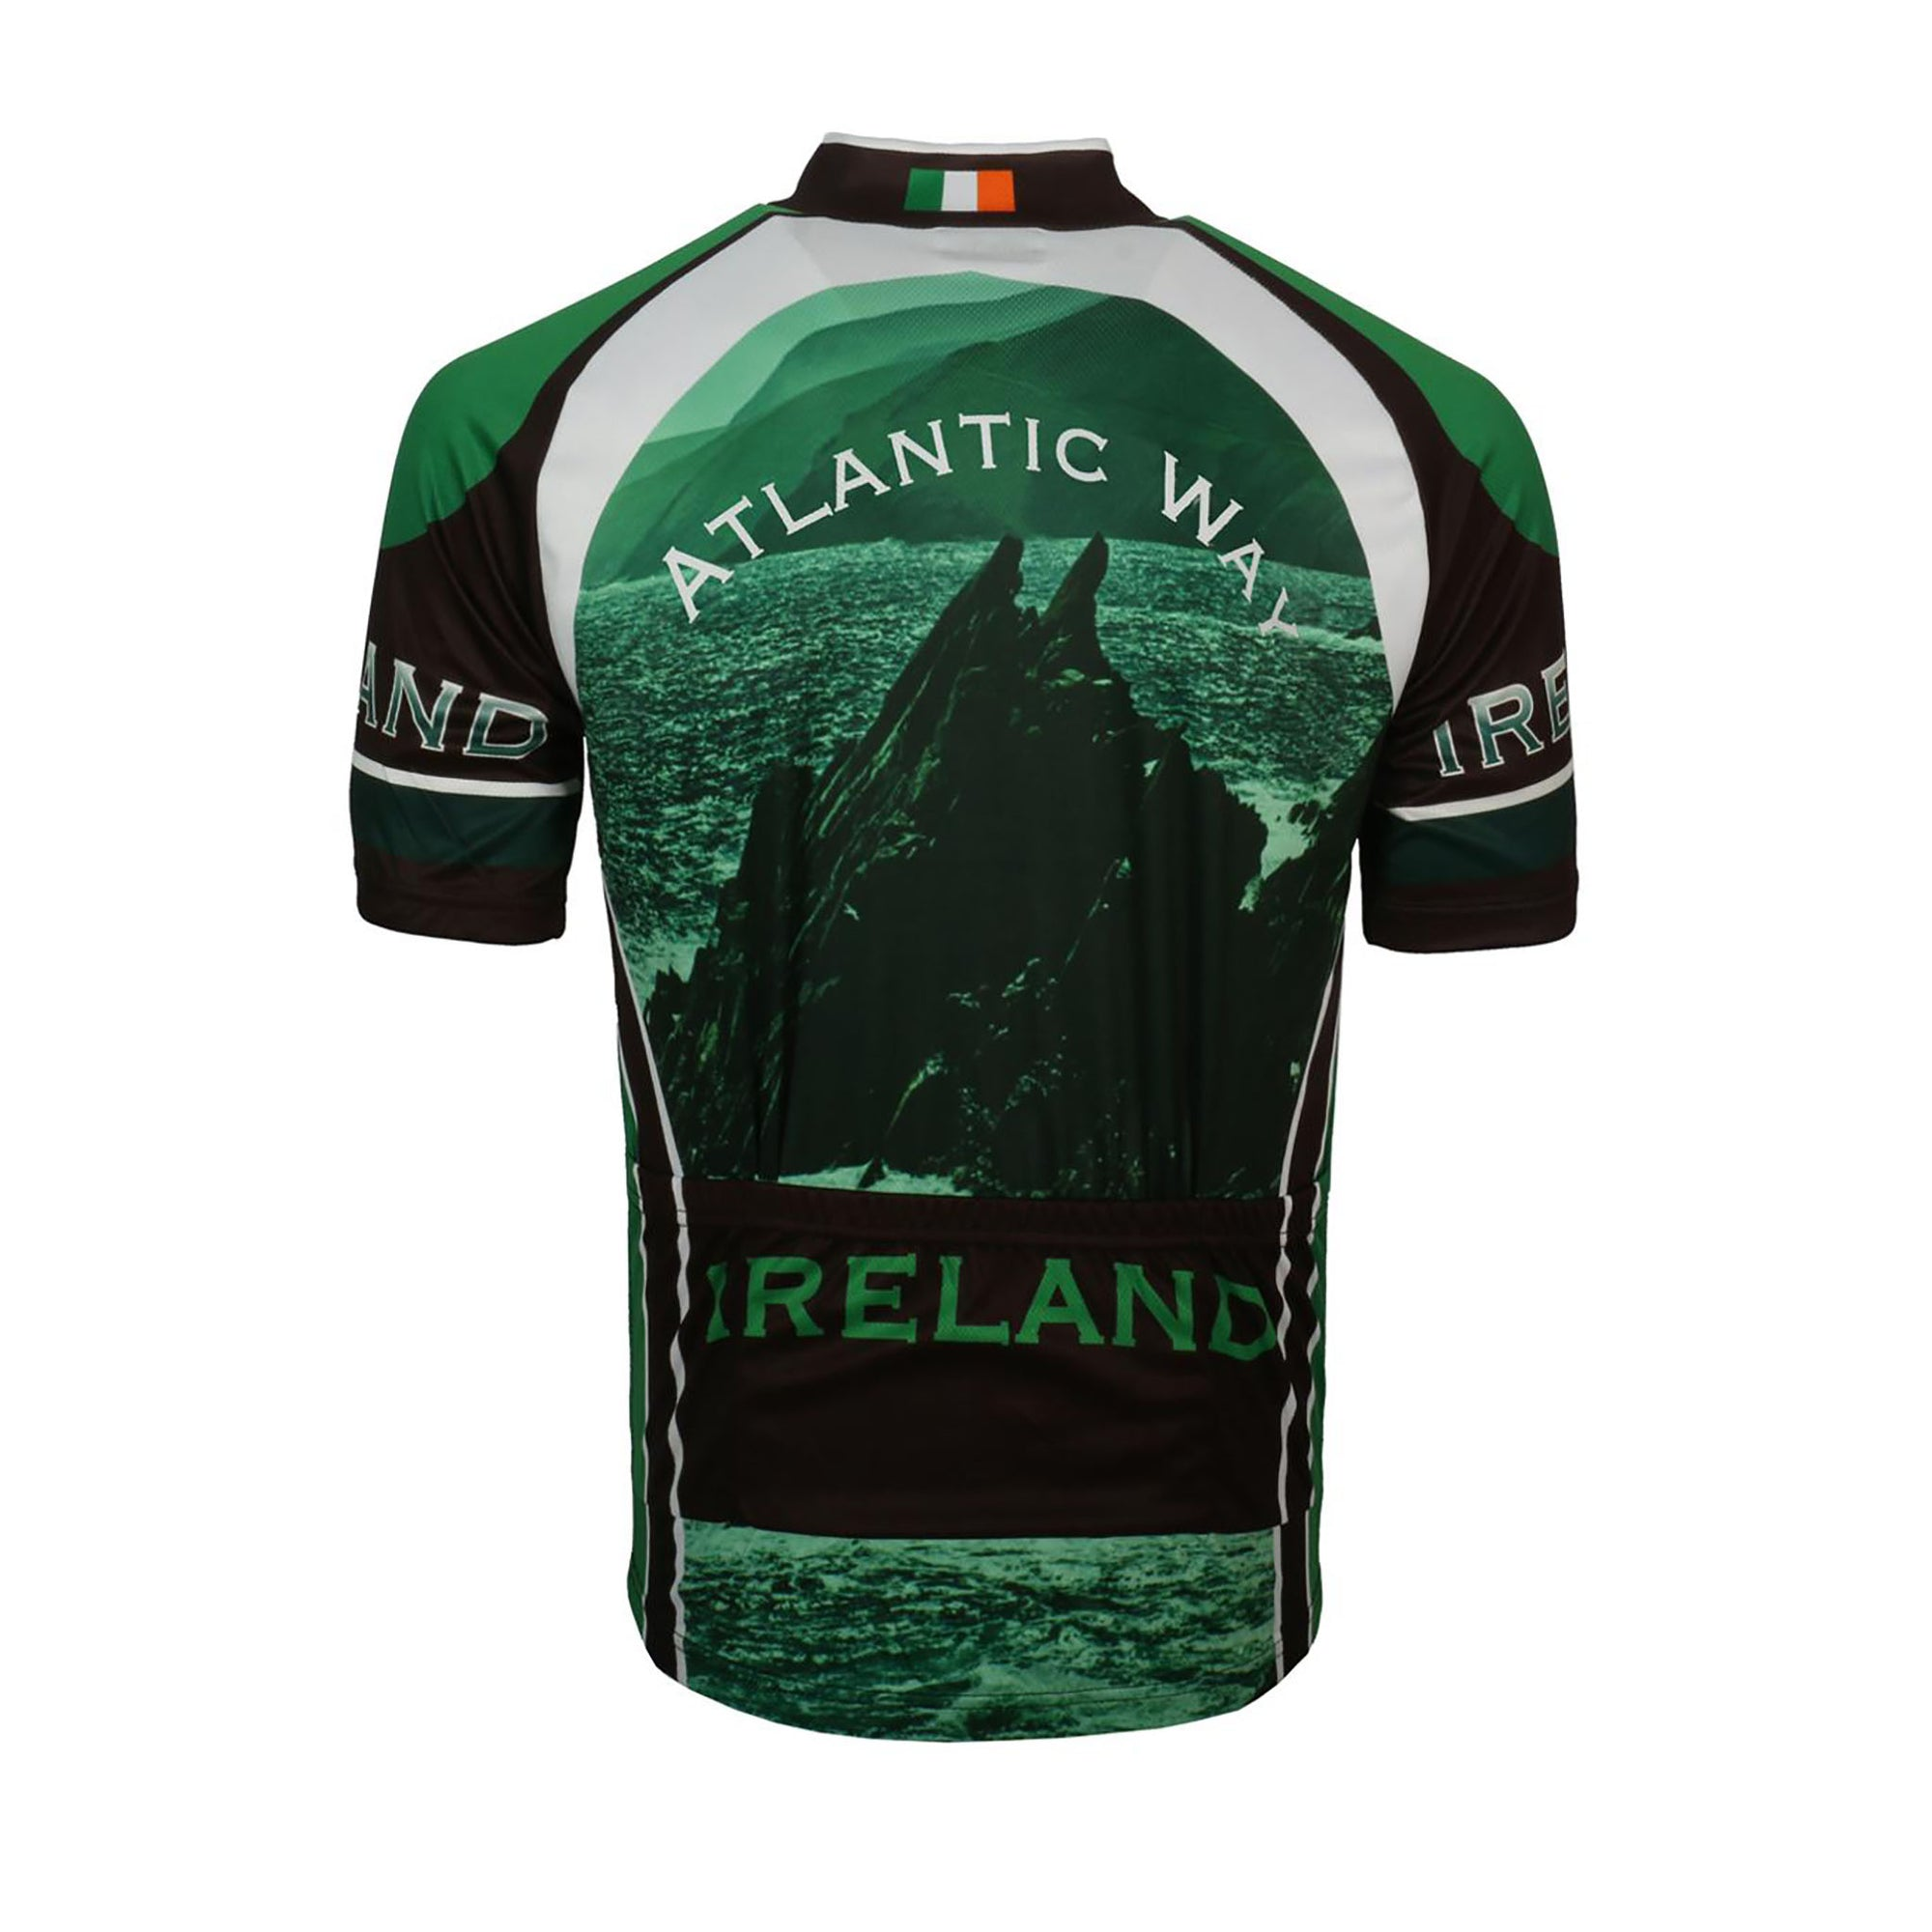 058e4f130ee Ireland Cycling Sport Wear T Shirt For Men-Allover Print-BE5080 ...